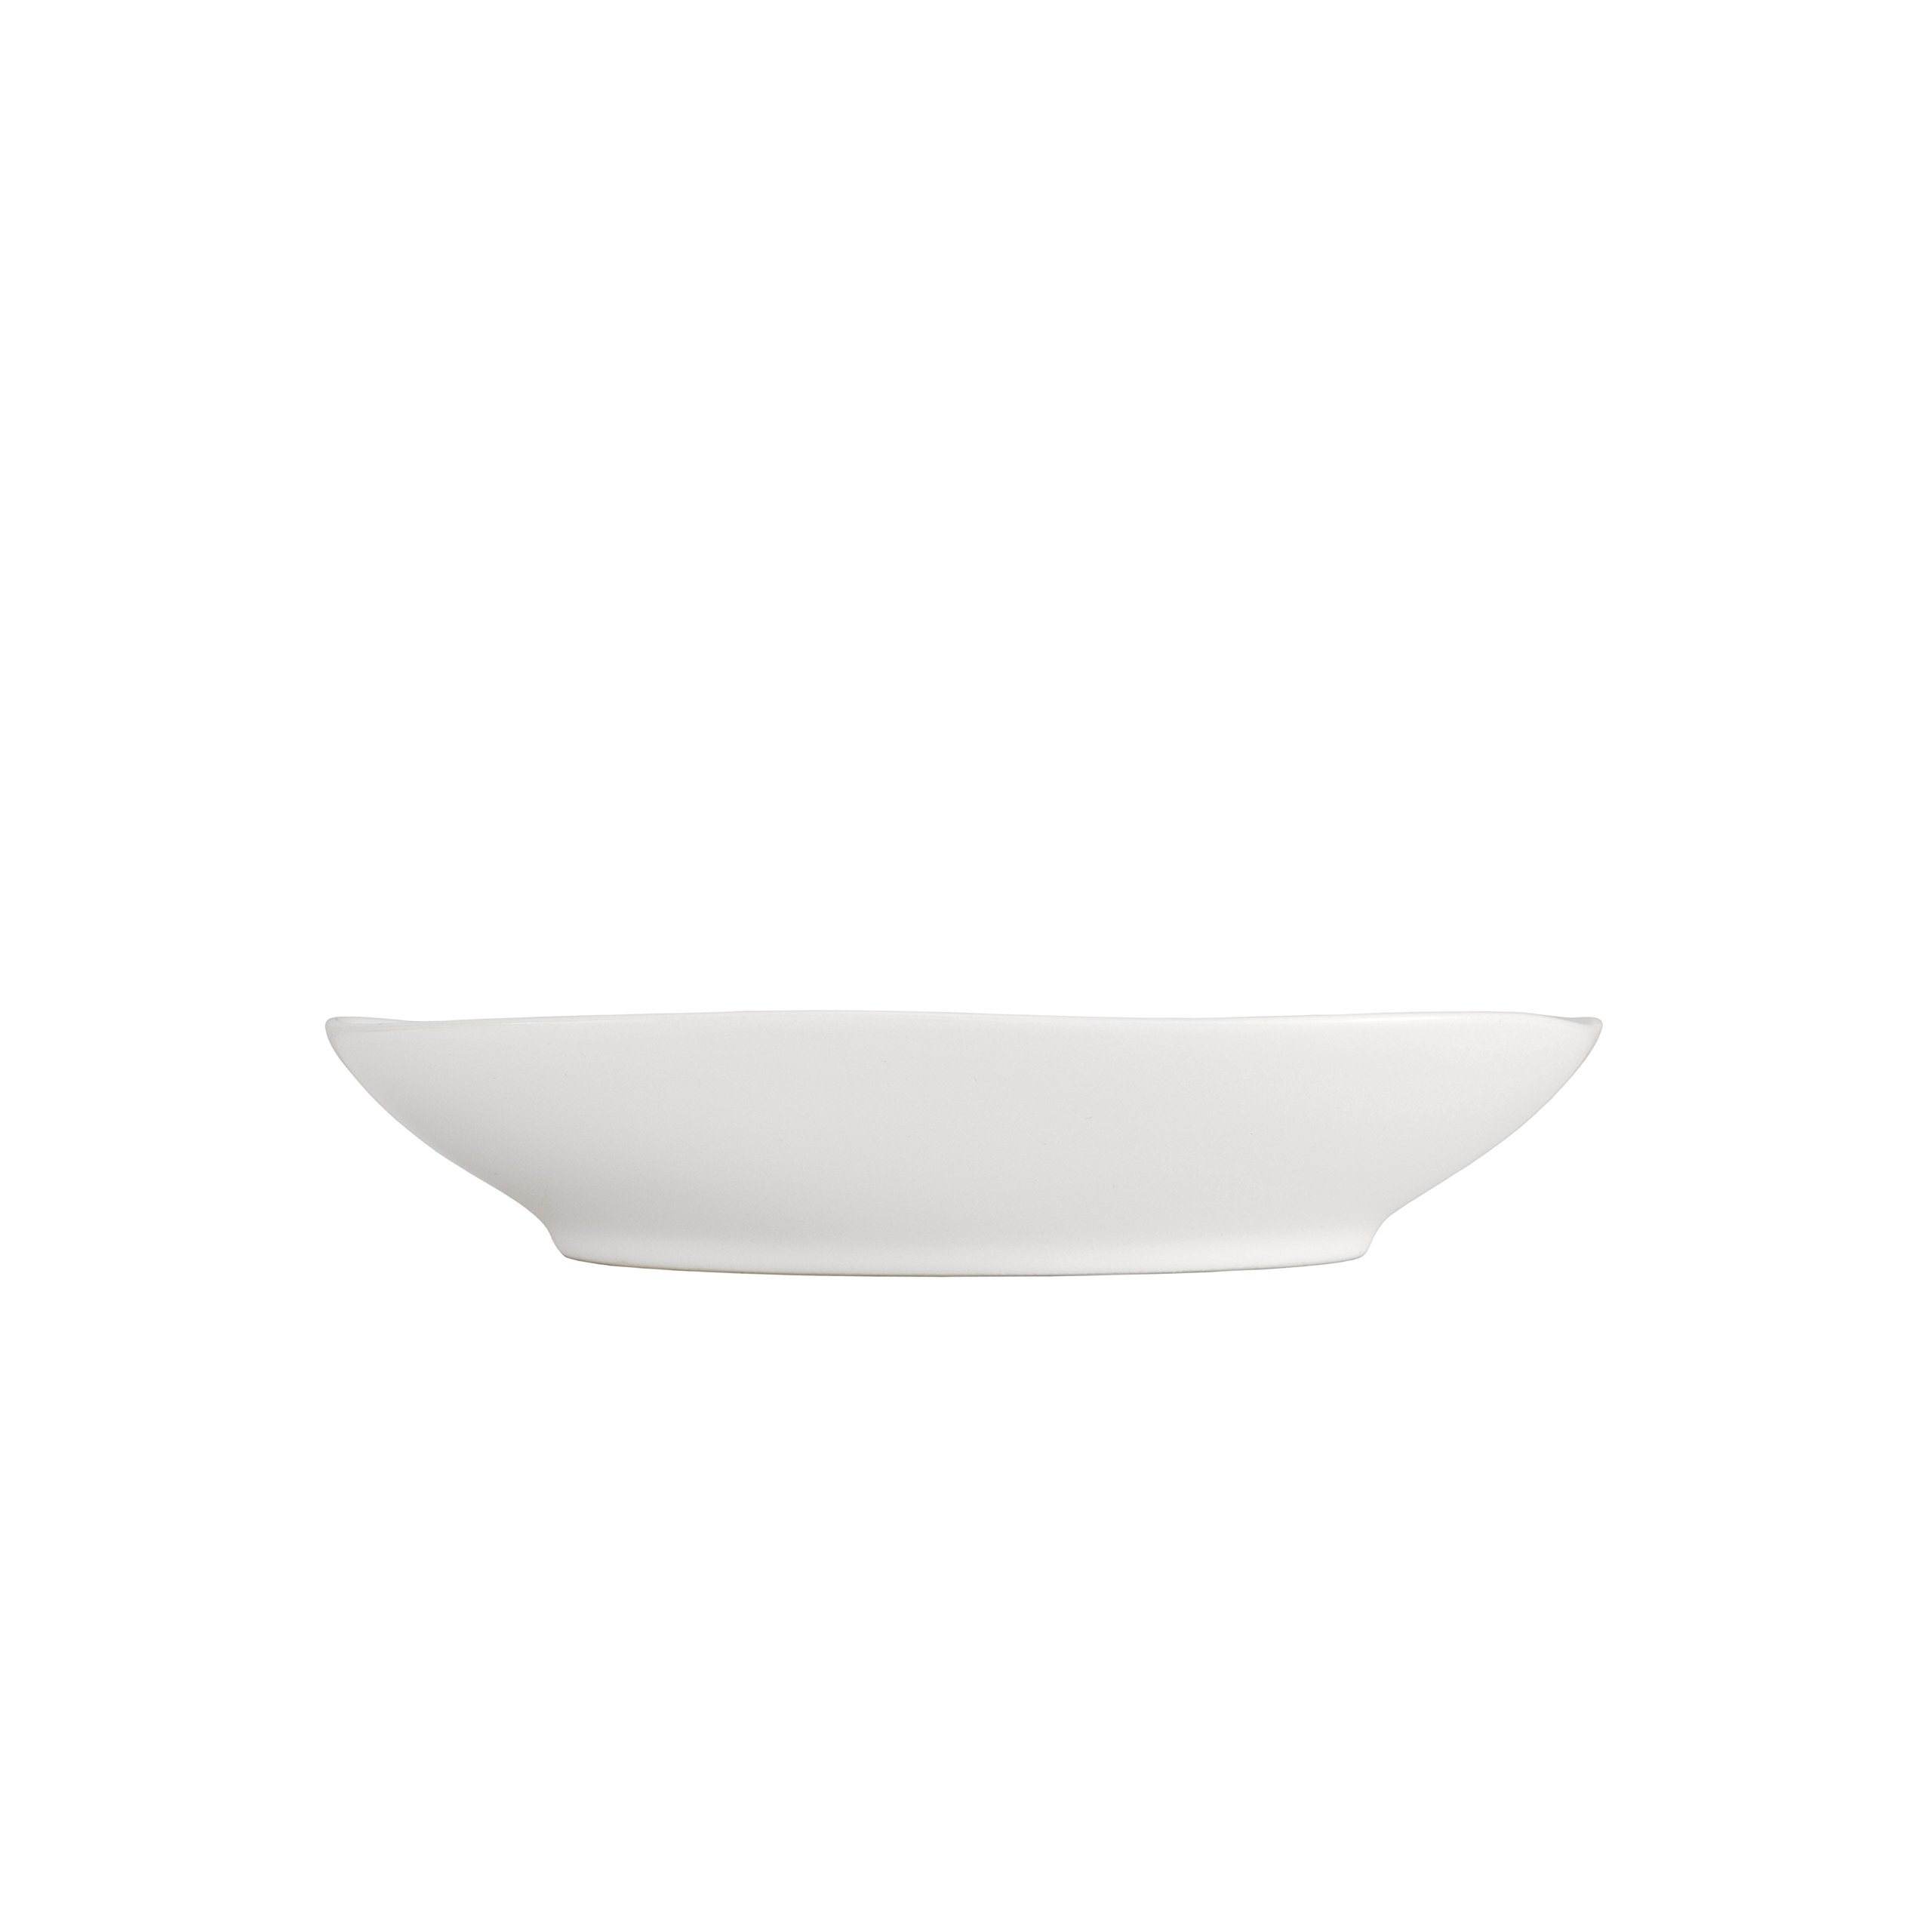 Fortessa Vitraluxe Dinnerware Heirloom Matte Finish Coupe Pasta Bowl 9-Inch, Linen, Set of 4